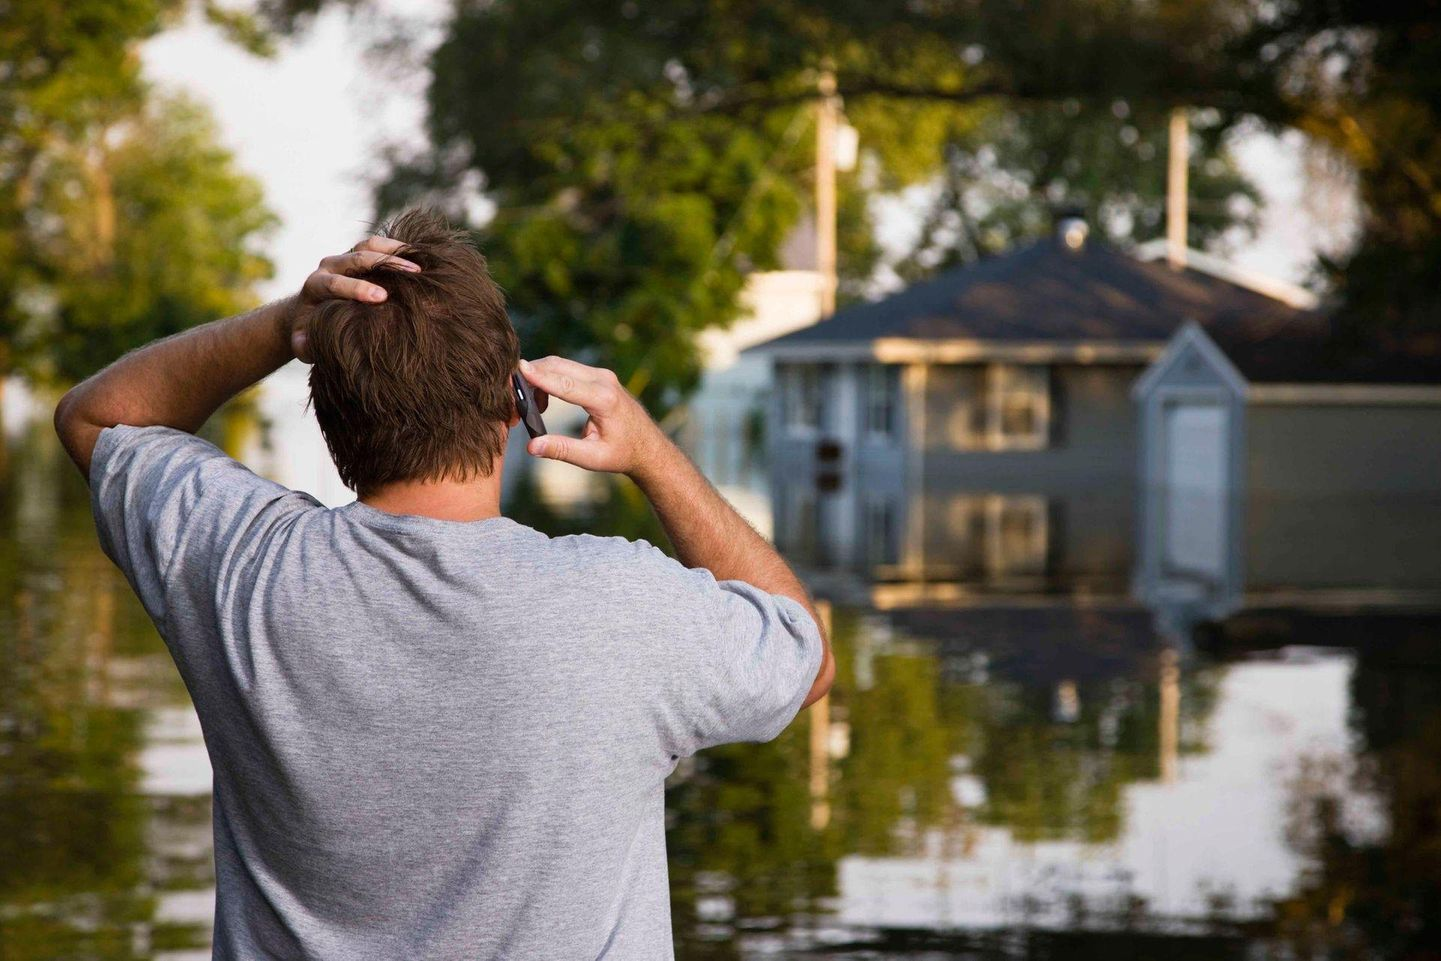 Man looking at his flooded house and making a phone call